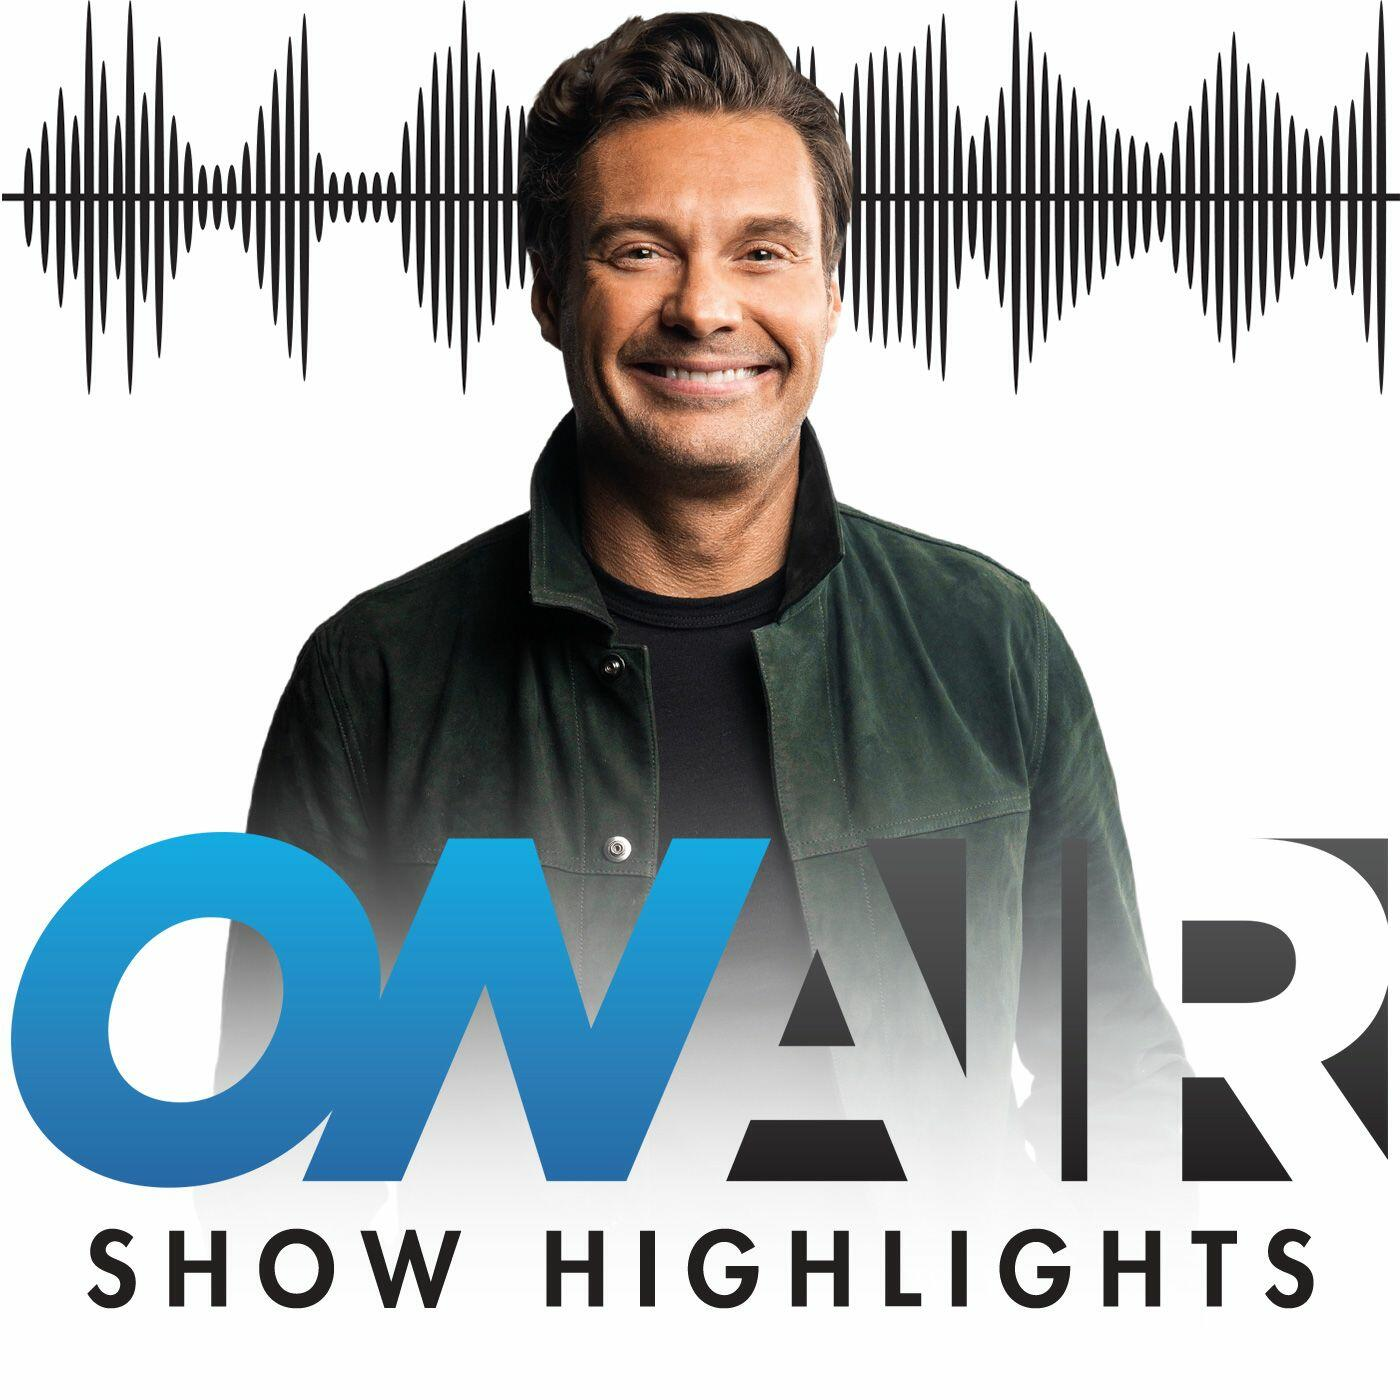 Listen to the On Air with Ryan Seacrest Episode - Will the Planet Run Out of Fish? Ichthyologist Dr. Randy Singer Answers Ryan's Questions on iHeartRadio | iHeartRadio